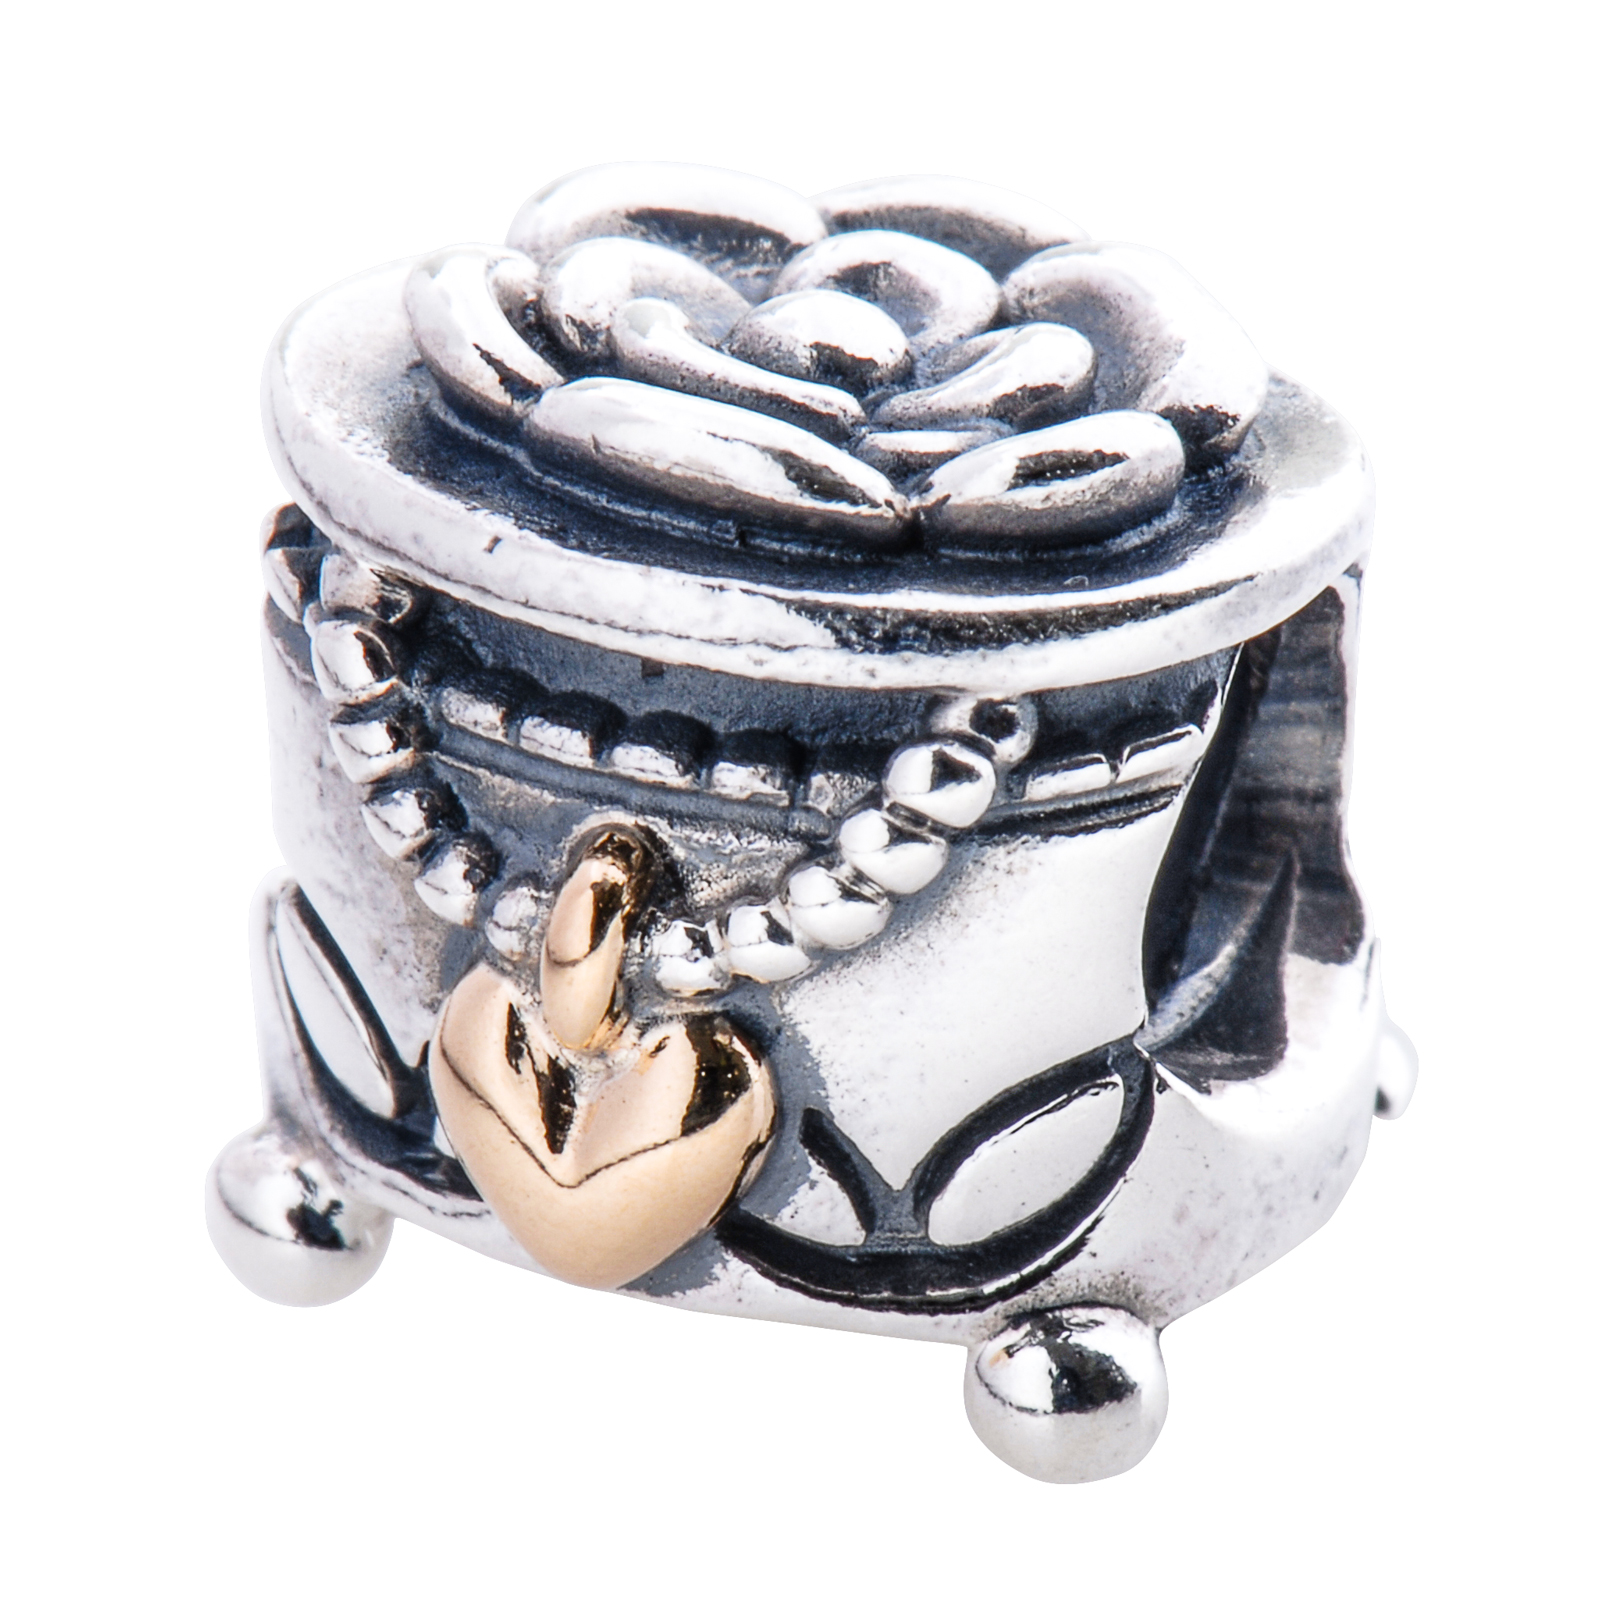 Jewelry Box For Pandora Charms: Pandora Jewelry Box Charm In 925 Sterling Silver, 791019